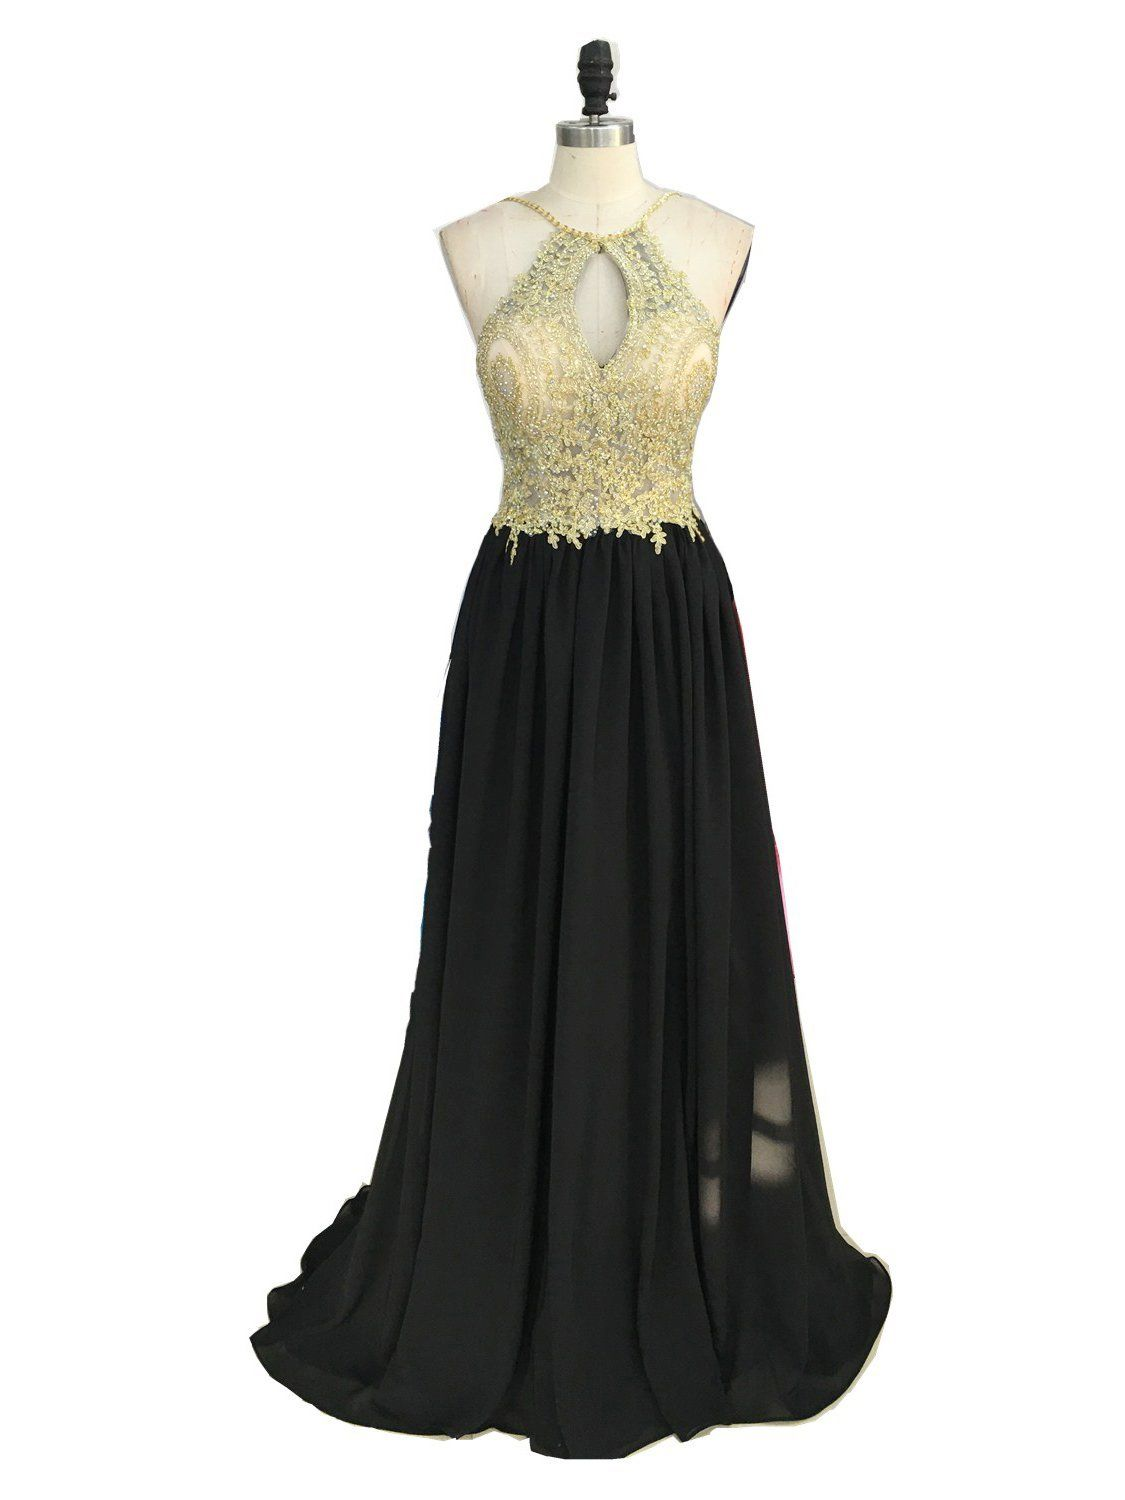 Aline gold lace top black chiffon halter long prom dresses formal